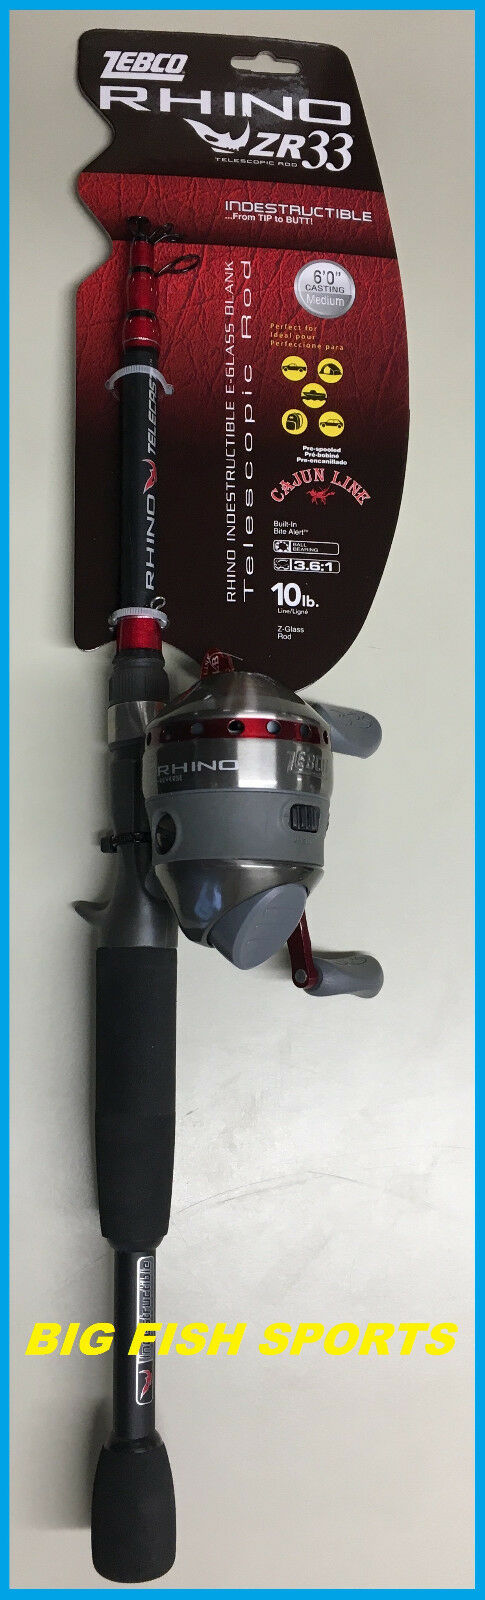 ZEBCO ZR33 SPINCAST 6' TELESCOPING Fishing Combo Rod and Reel NEW   ZR33605MTEL